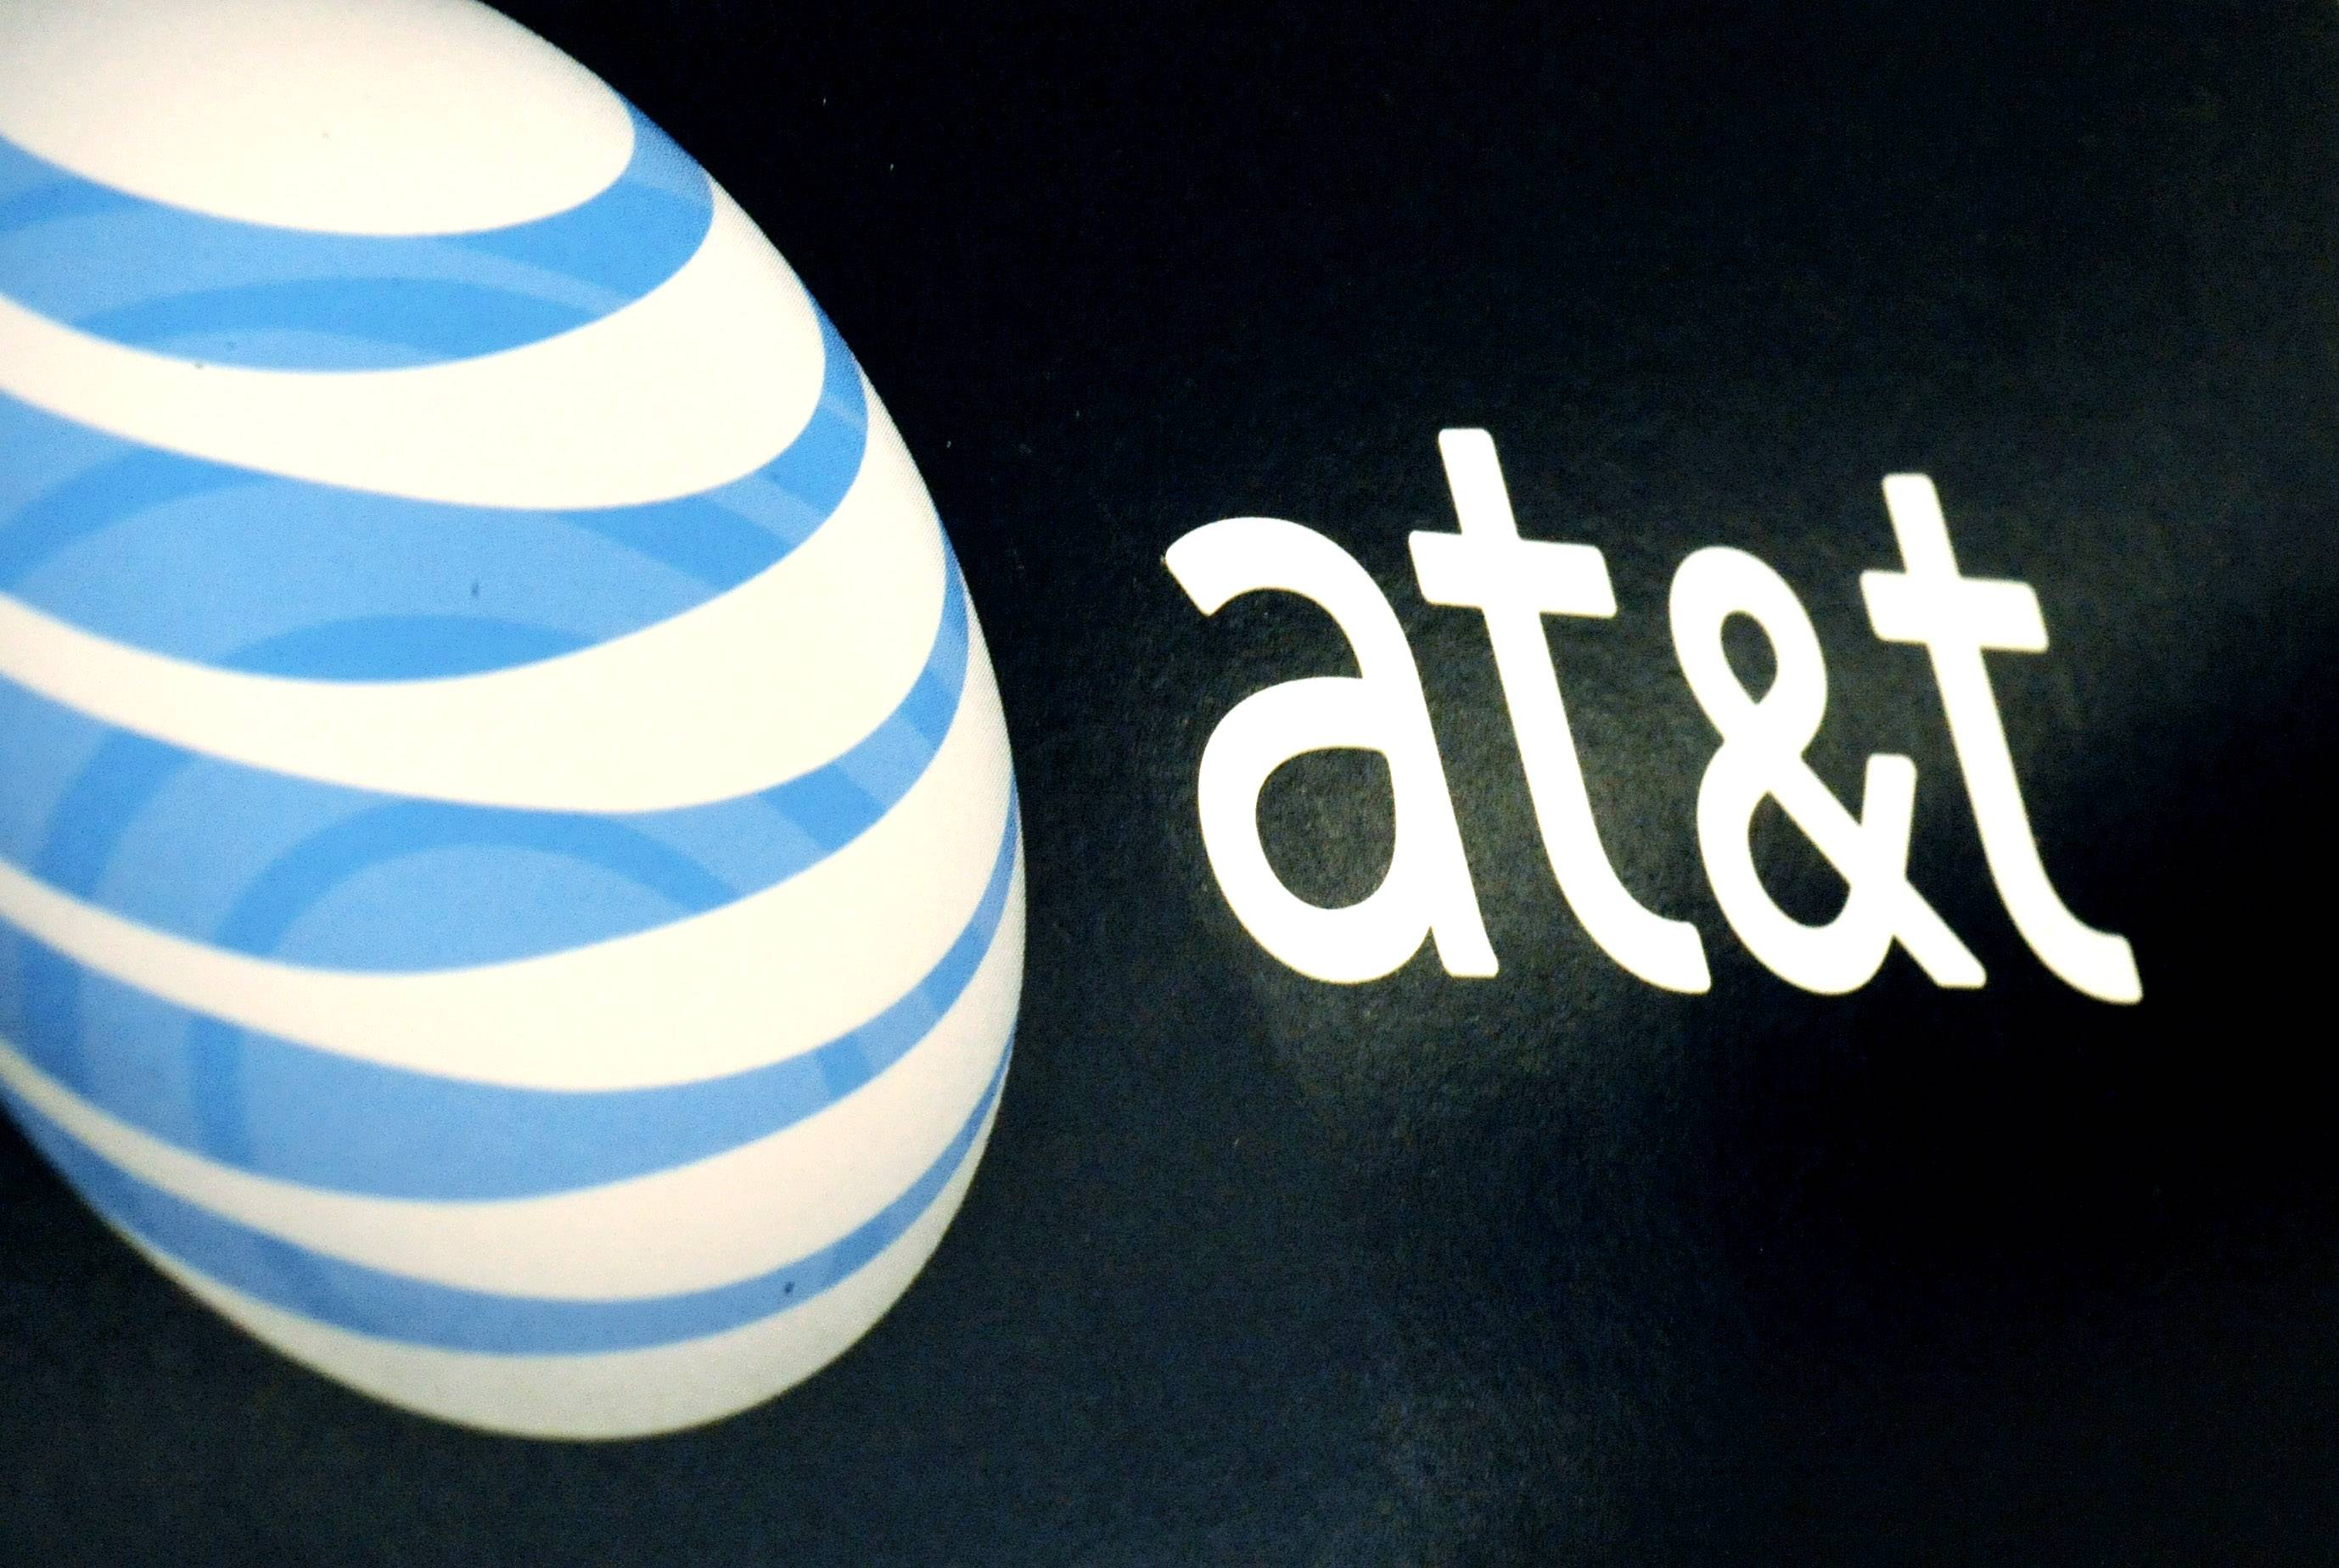 AT&T on Monday said it plans a major expansion of super-fast Internet services to cover as many as 100 municipalities in 25 metropolitan areas, including Chicago.